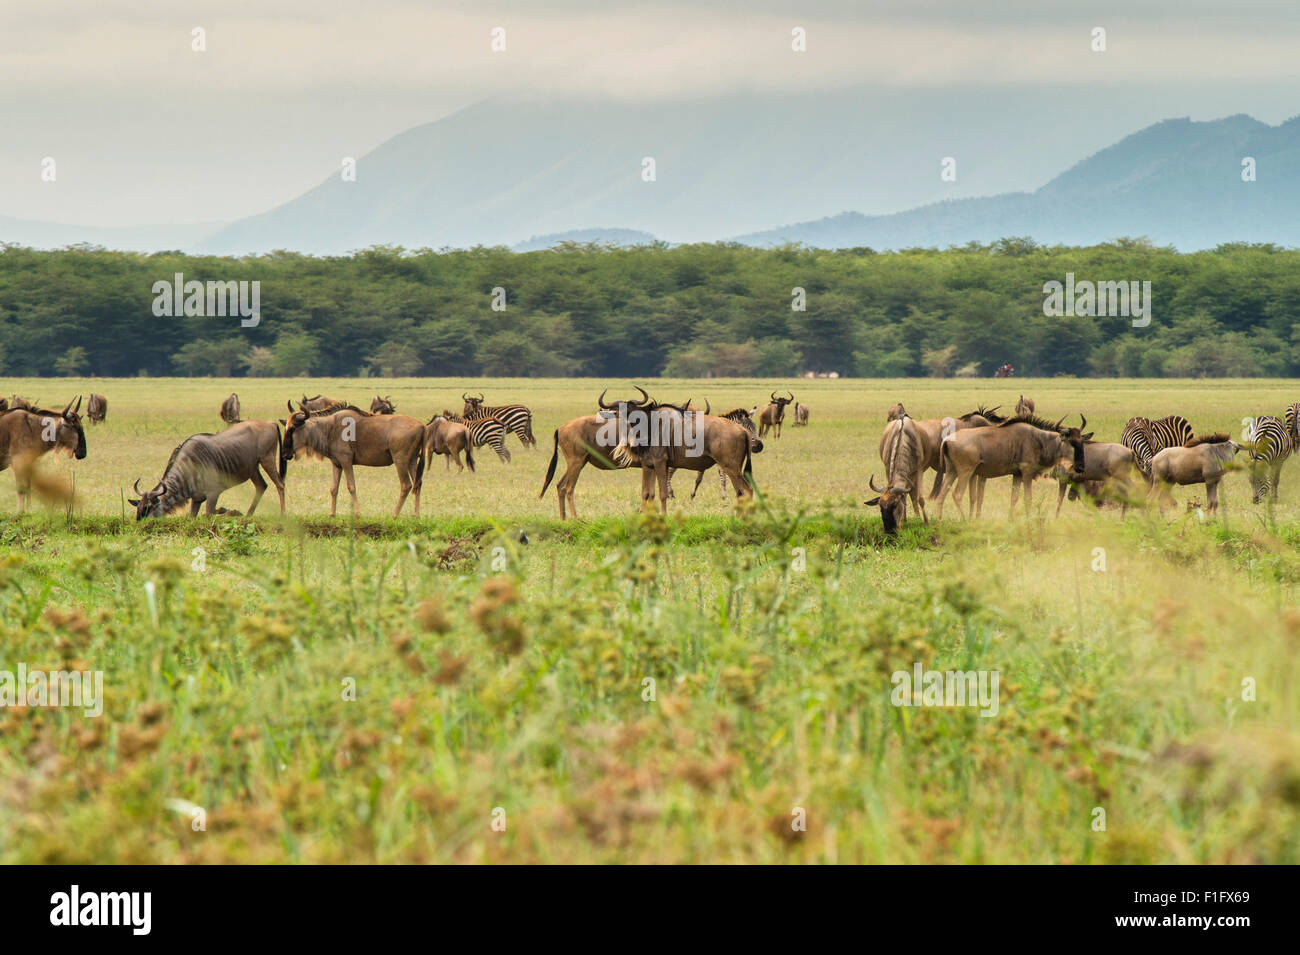 Lake Manyara safari Tanzania Wildebeast and Zebra graze - Stock Image